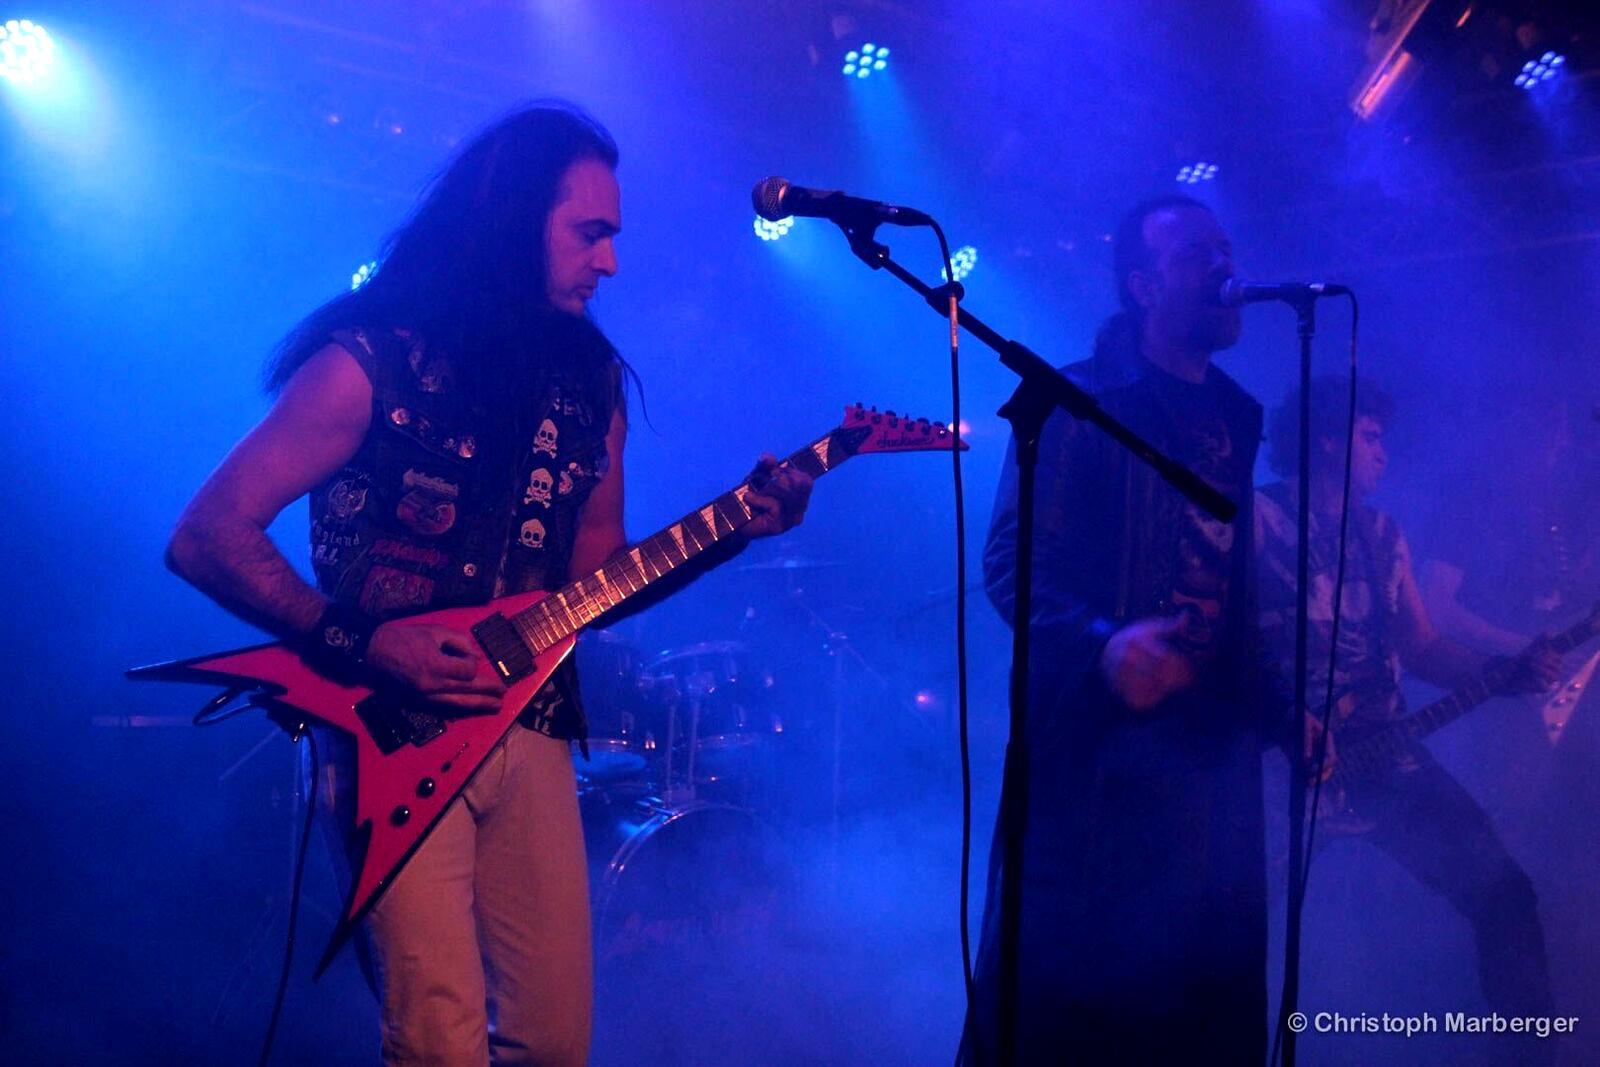 Anguish Force Livestage 4 - Raining Blood Night - Livestage Innsbruck - live